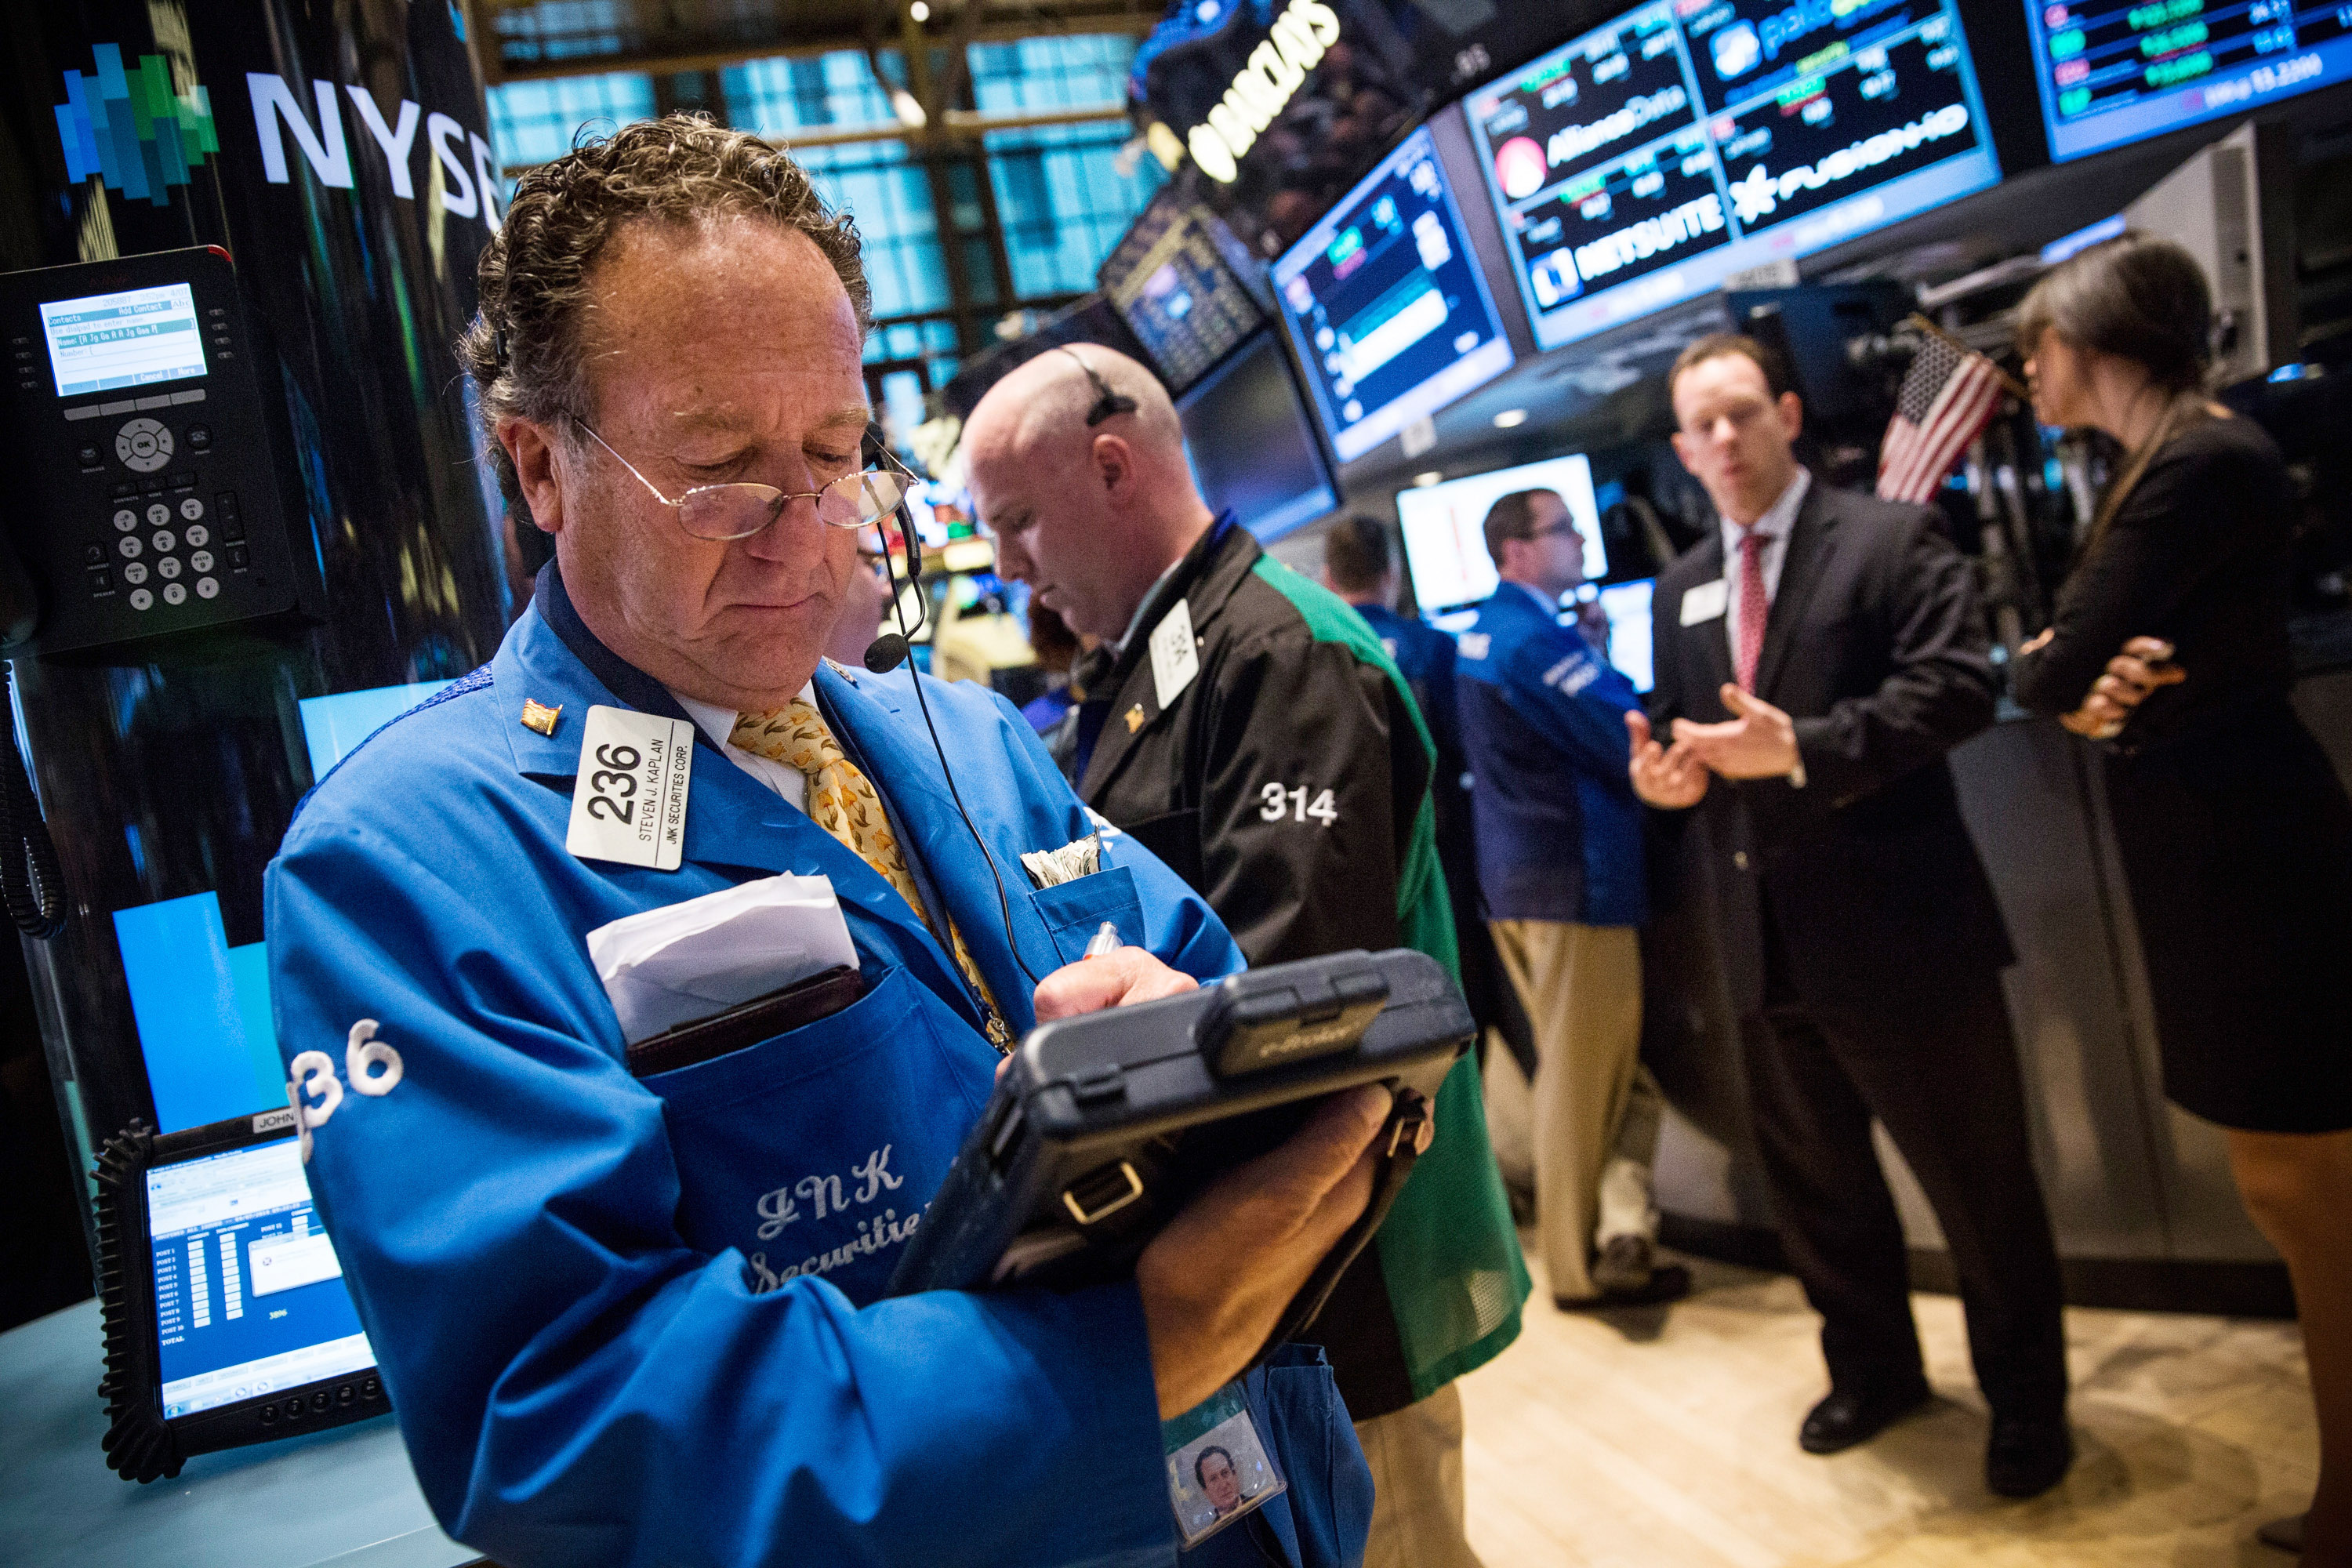 A trader works on the floor of the New York Stock Exchange during the afternoon of April 7, 2014 in New York City.